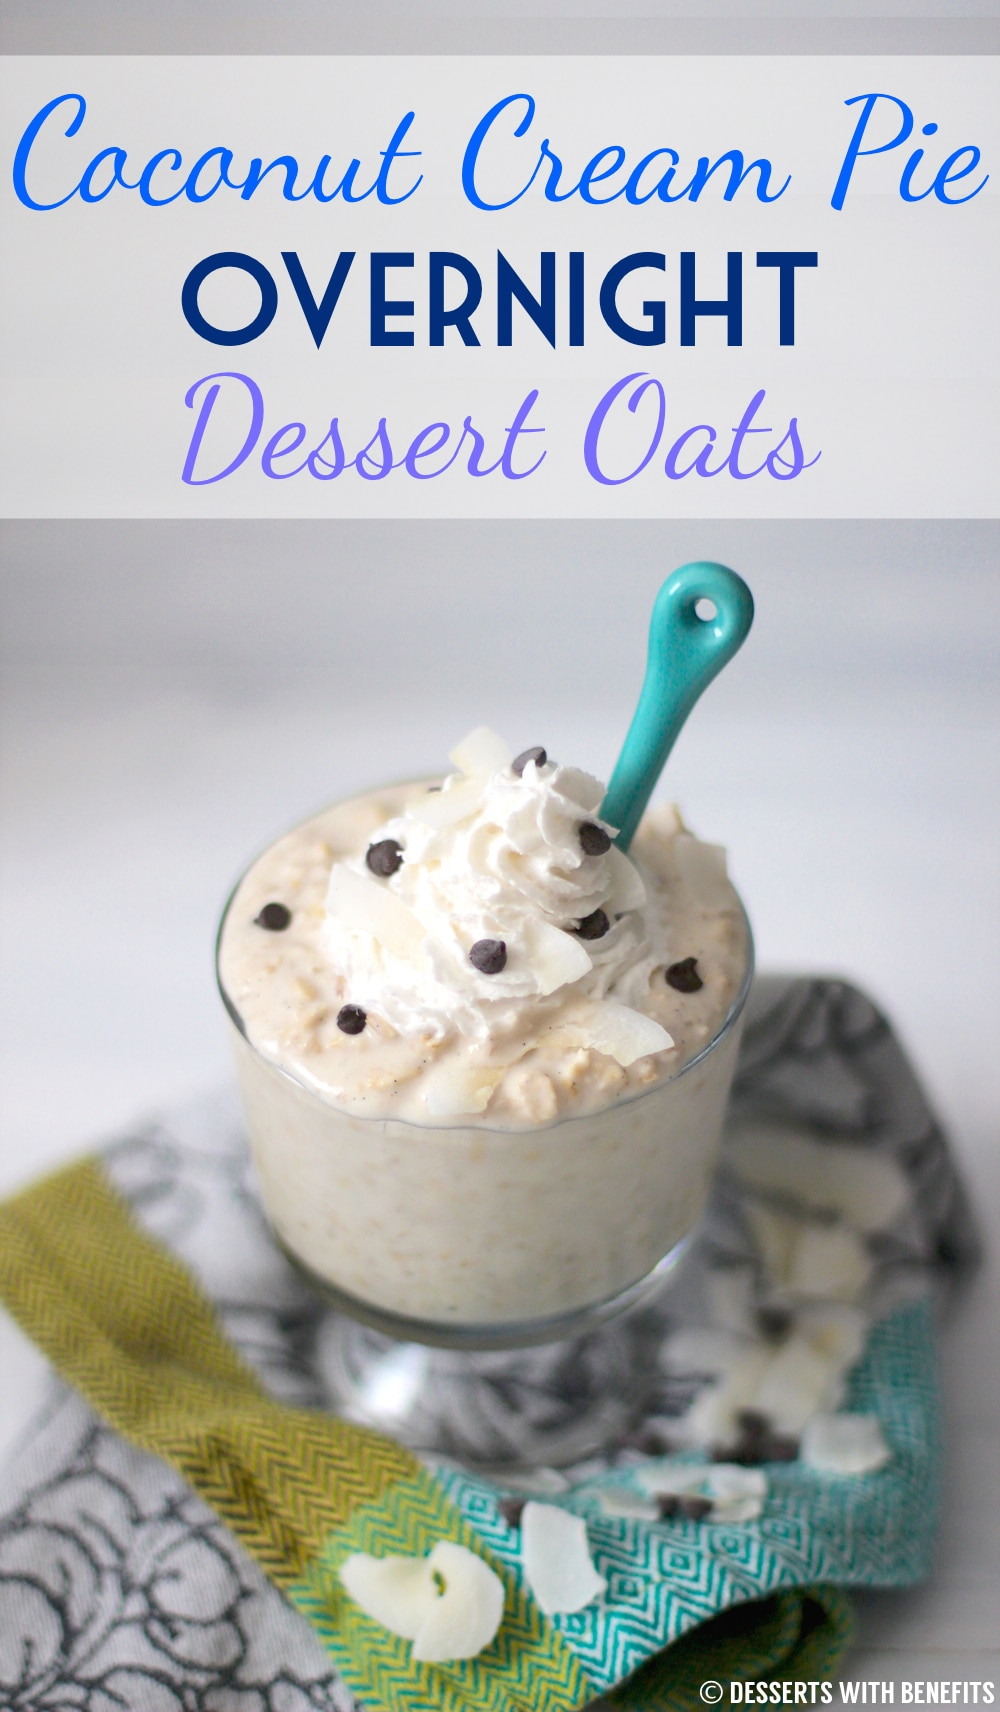 Healthy Coconut Cream Pie Overnight Dessert Oats (refined sugar free, gluten free, vegan) - Healthy Dessert Recipes at Desserts with Benefits